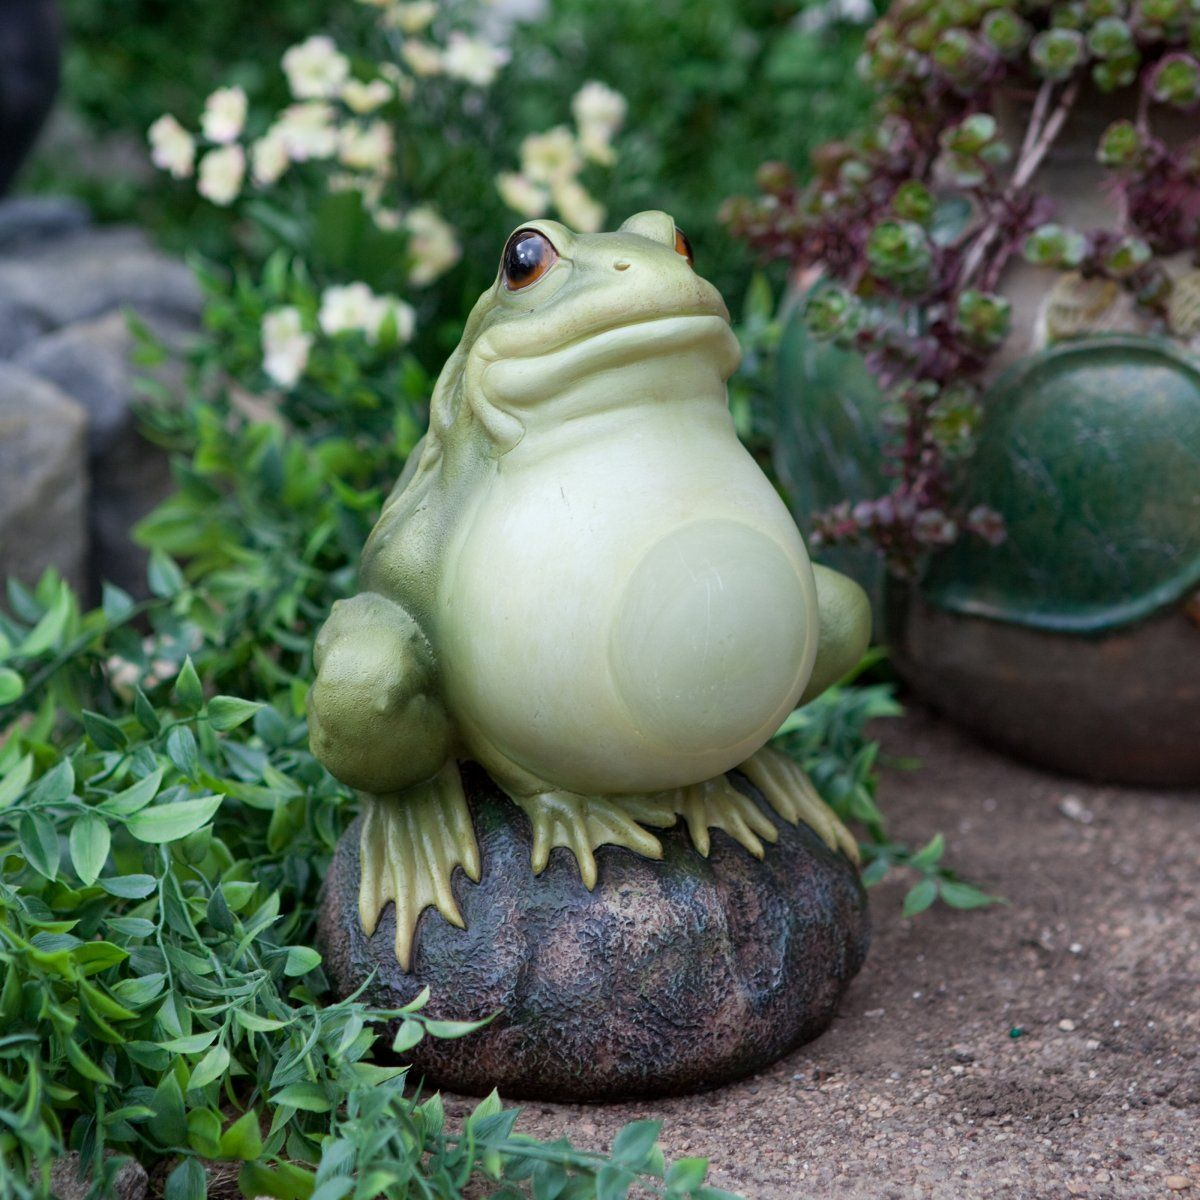 Alpine Glow In The Dark Frog On A Rock Garden Statue   Garden Statues At  Garden